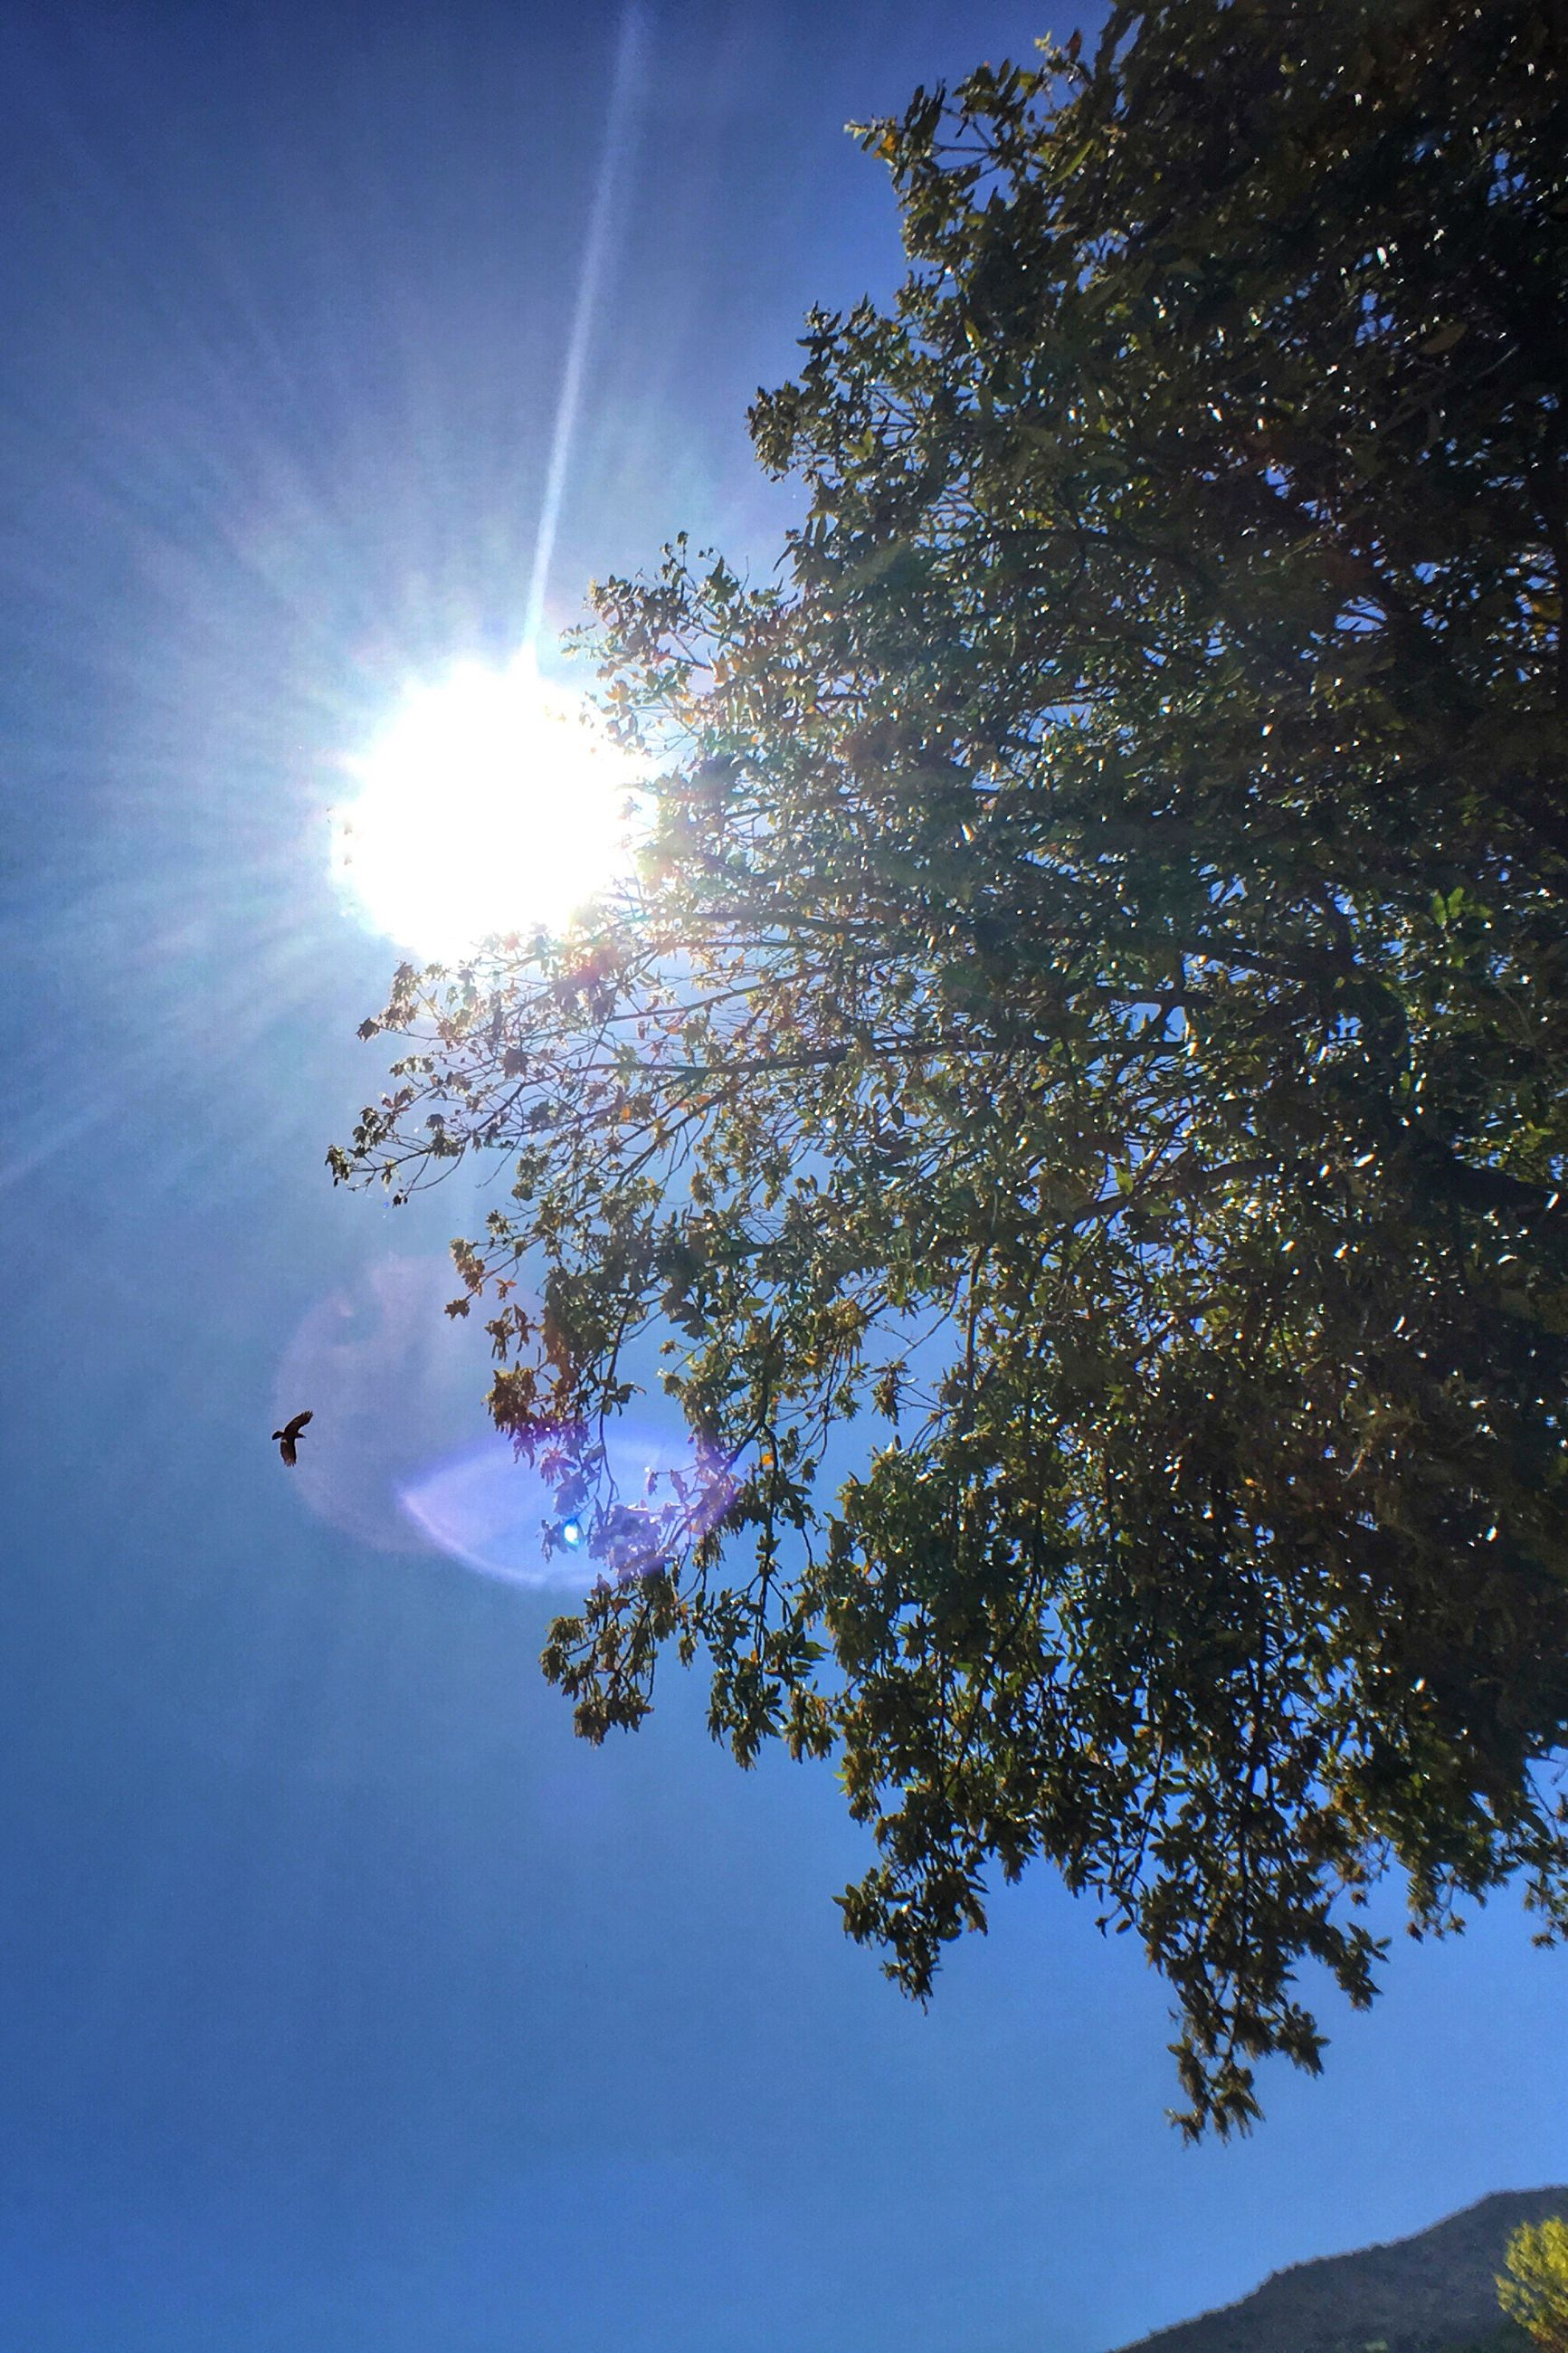 sun, sunbeam, low angle view, lens flare, sunlight, tree, blue, sunny, bright, clear sky, sky, beauty in nature, nature, growth, tranquility, day, no people, outdoors, scenics, tranquil scene